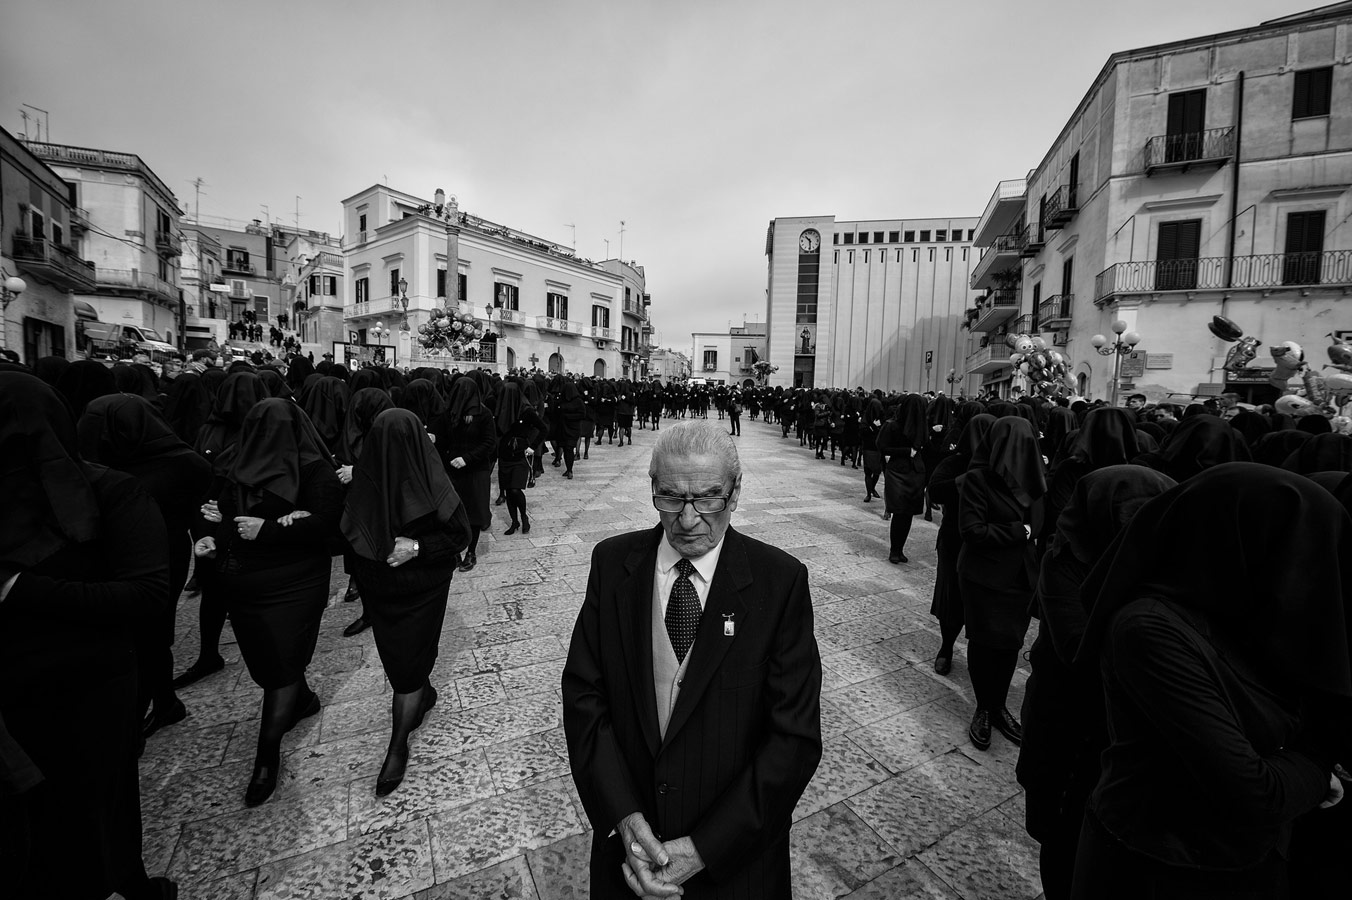 Professional Submission : Street Photography, Desolata, © Davide Pischettola, Molfetta, Bari, Italy, First Place, Perspectives: PhotoPlus Expo Annual Photography Contest